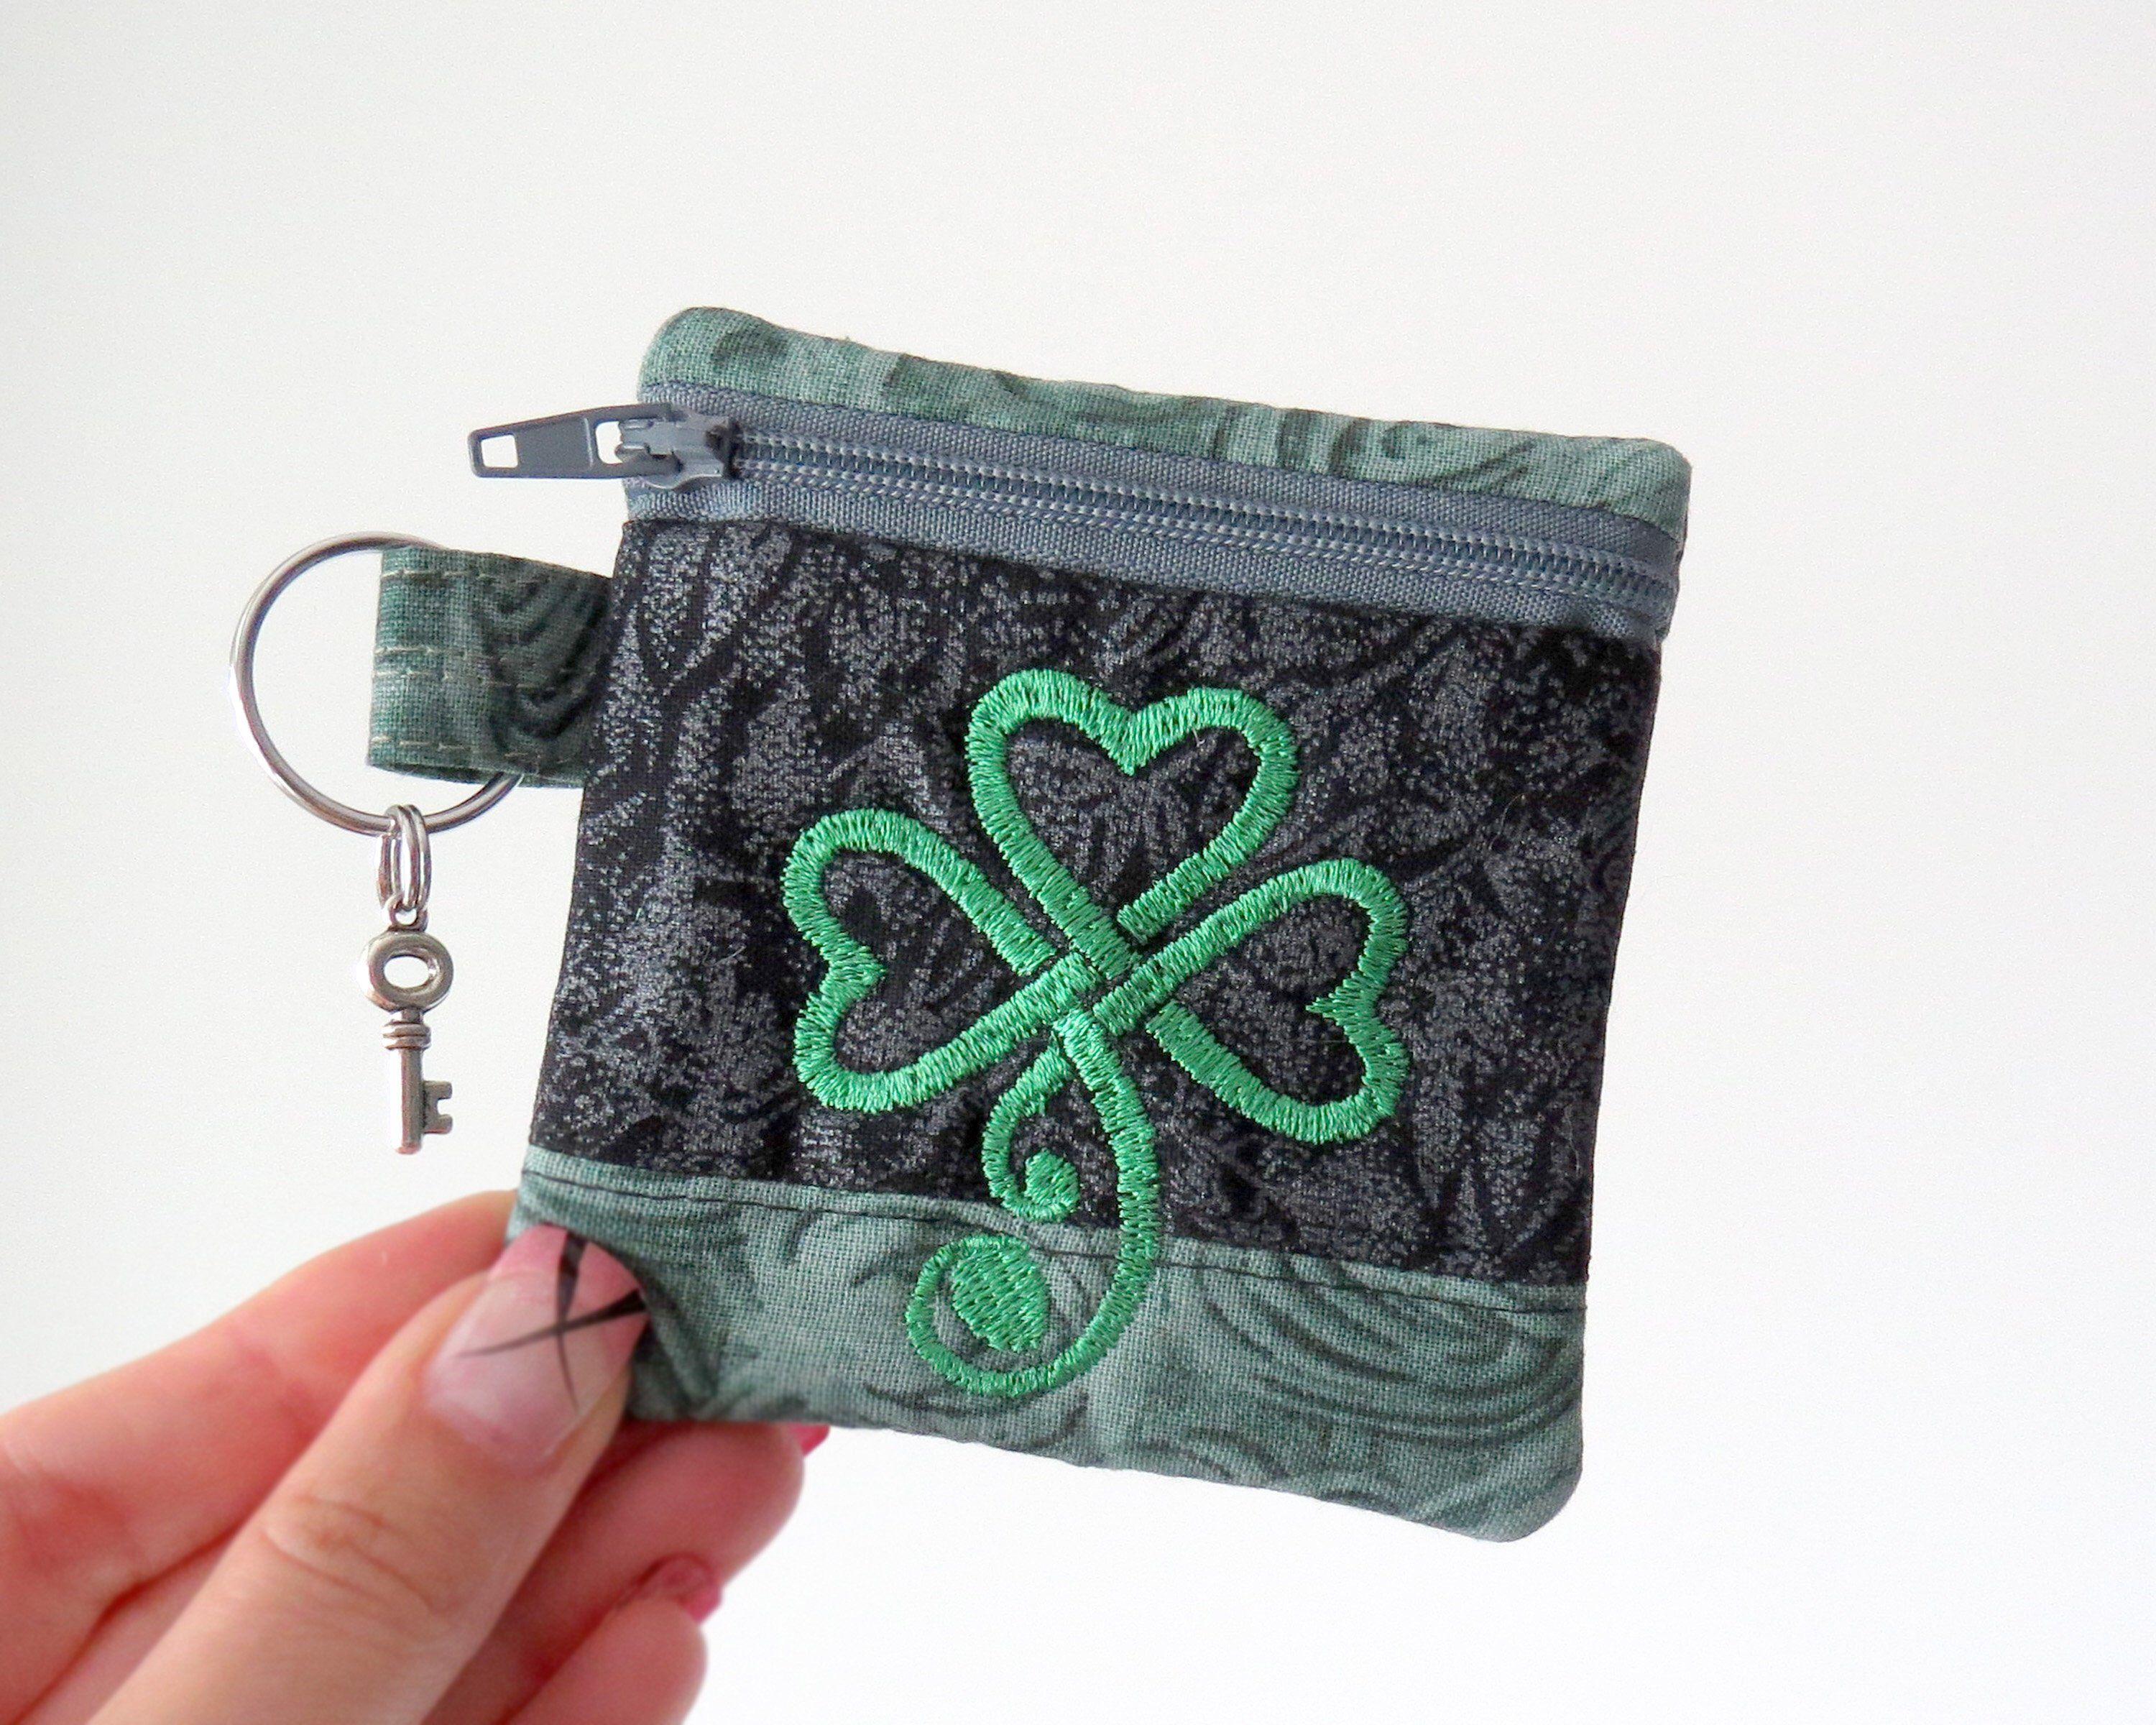 Excited to share this item from my etsy shop Shamrock